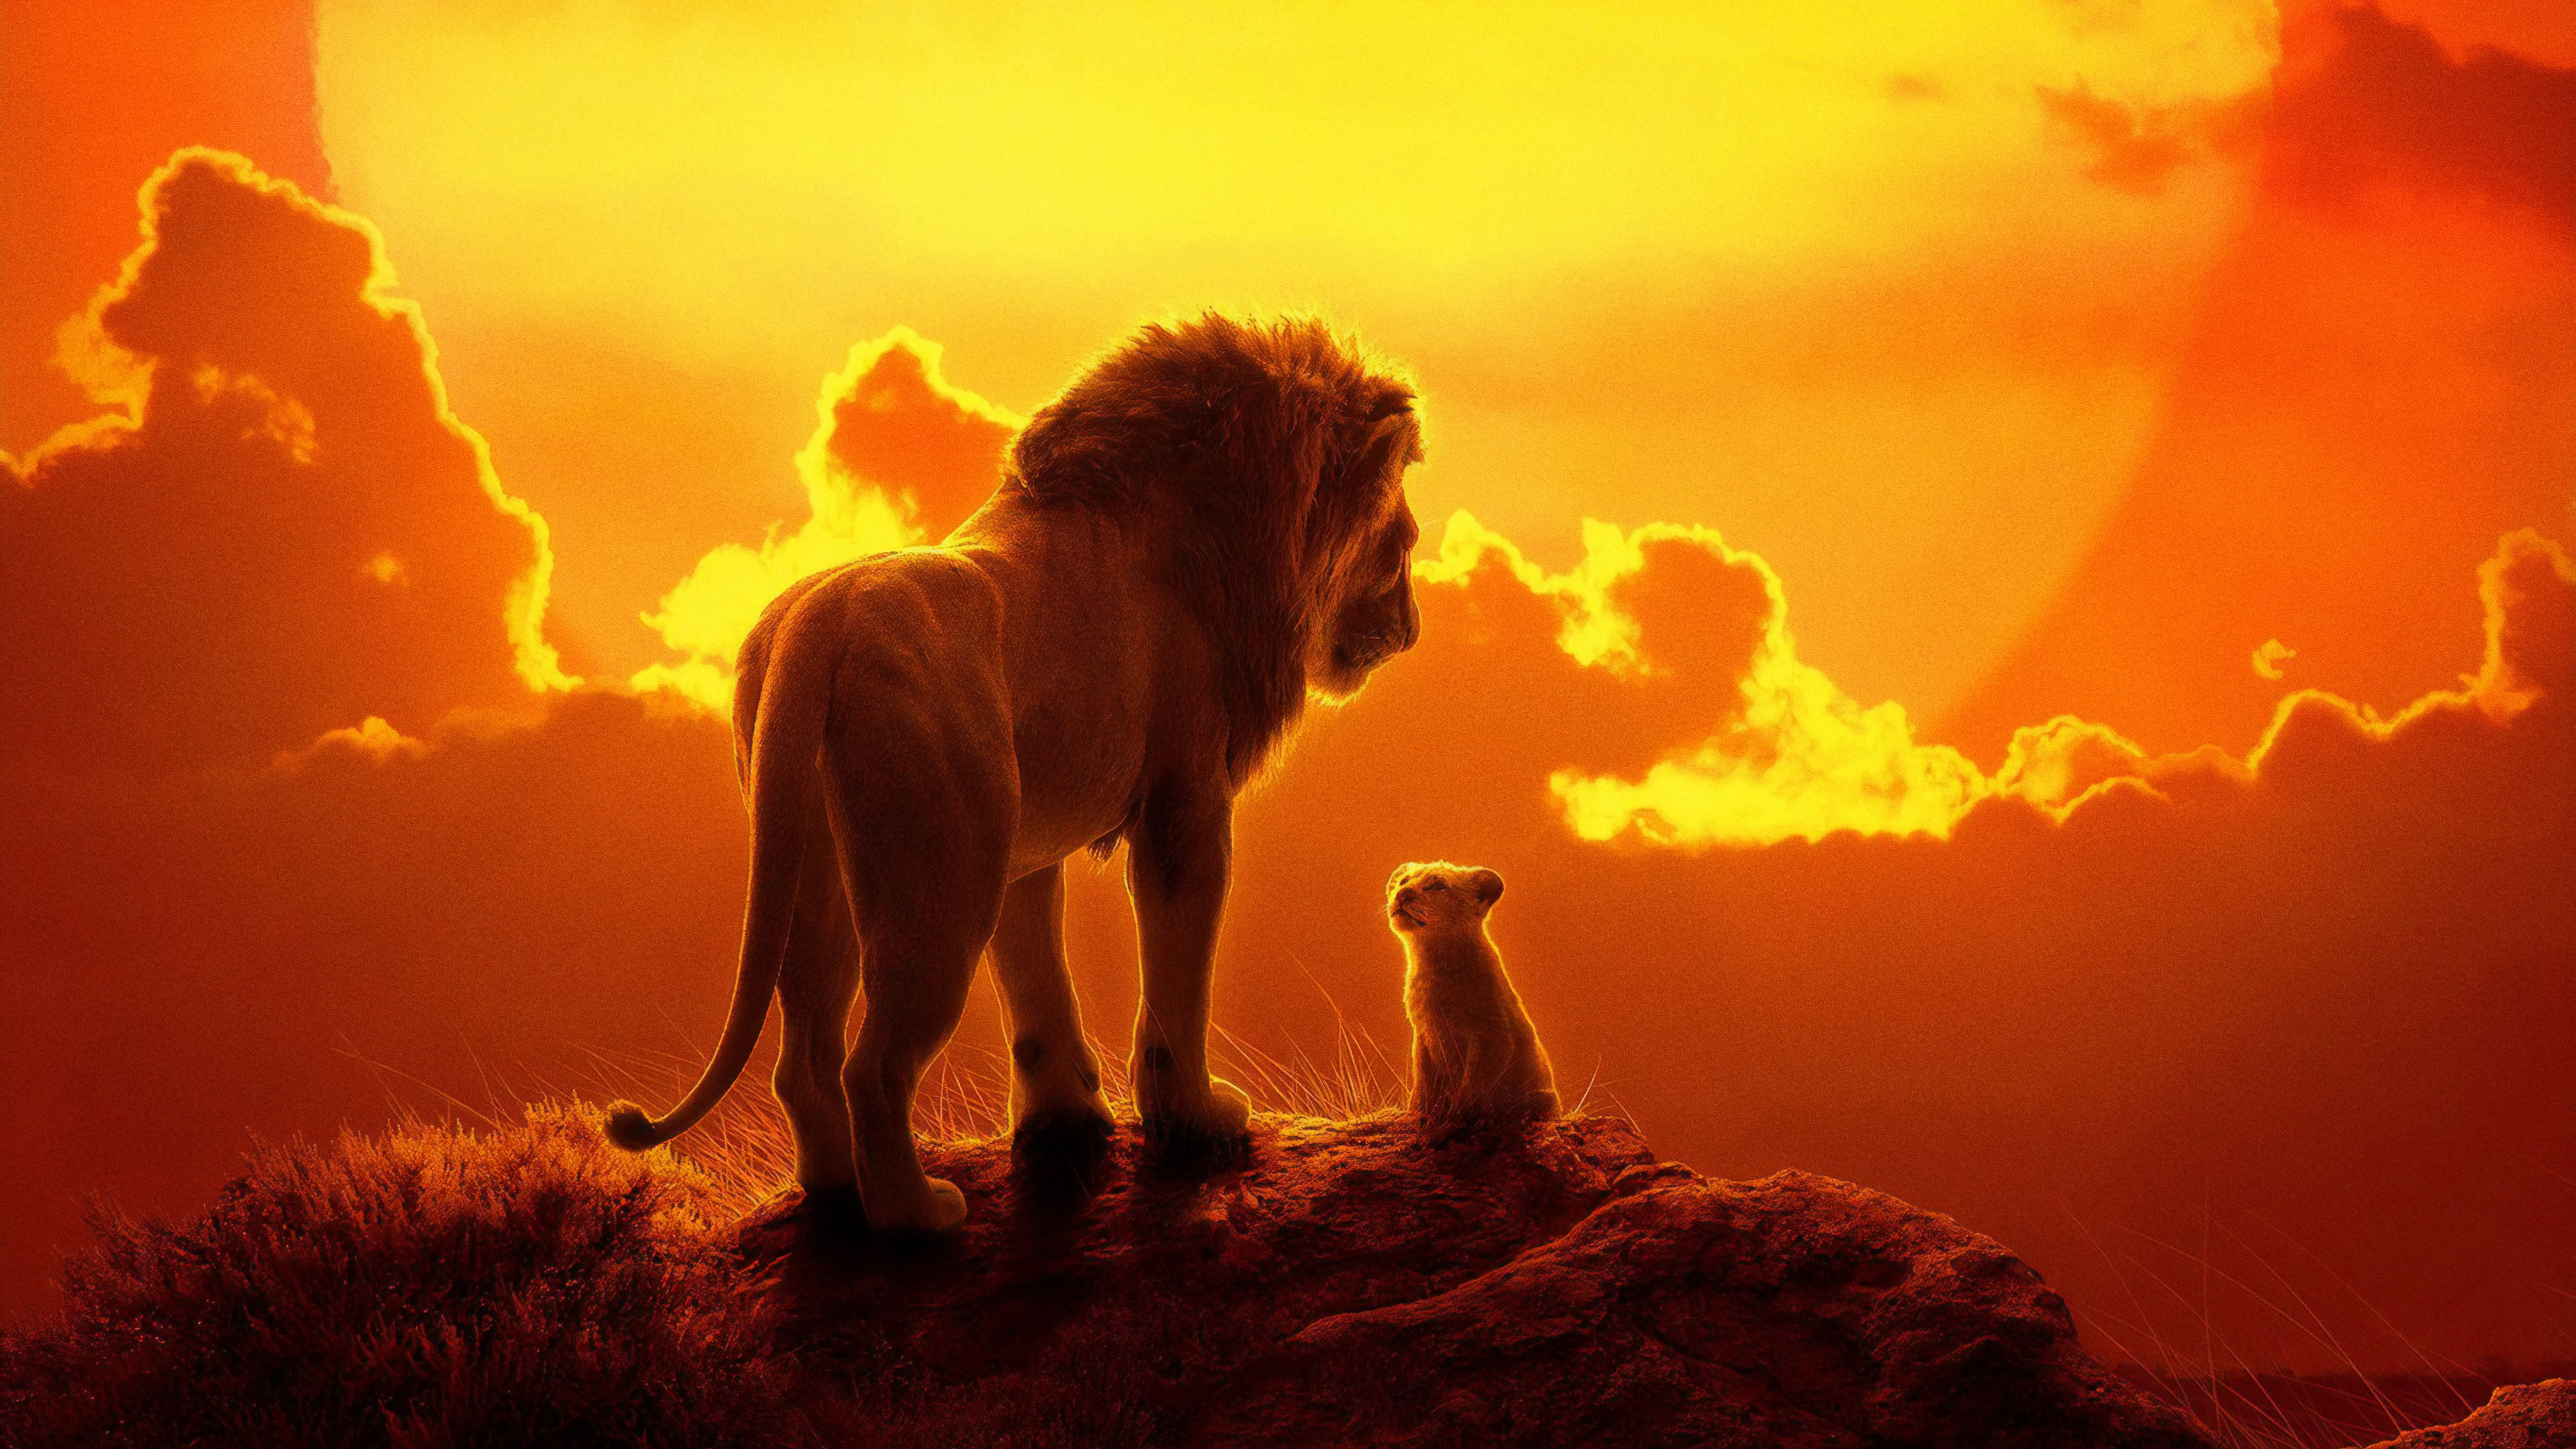 The Lion King 2019 HD Wallpaper Background Image 3375x1898 3375x1898